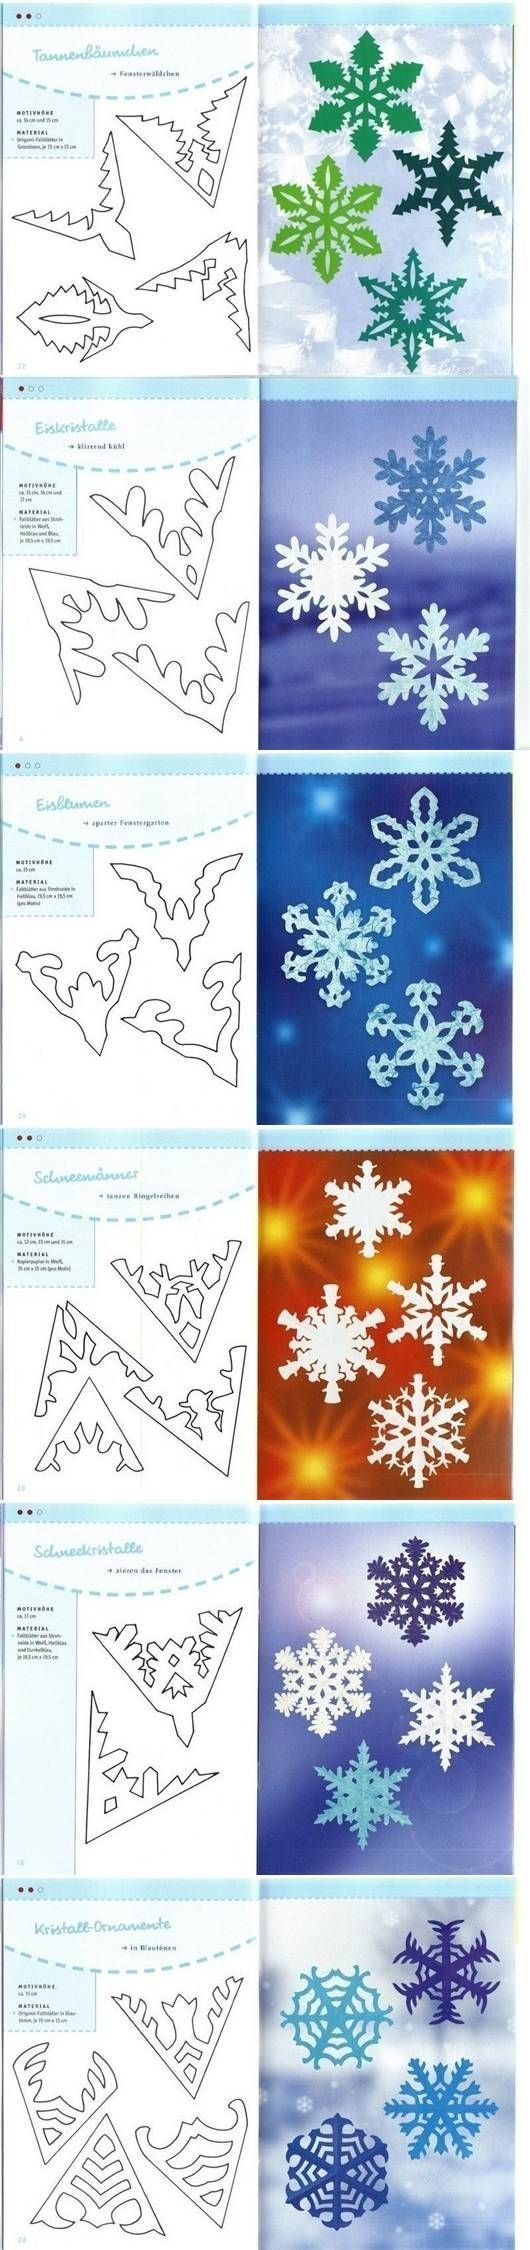 DIY-Paper-Schemes-of-Snowflakes.jpg (530×2250)